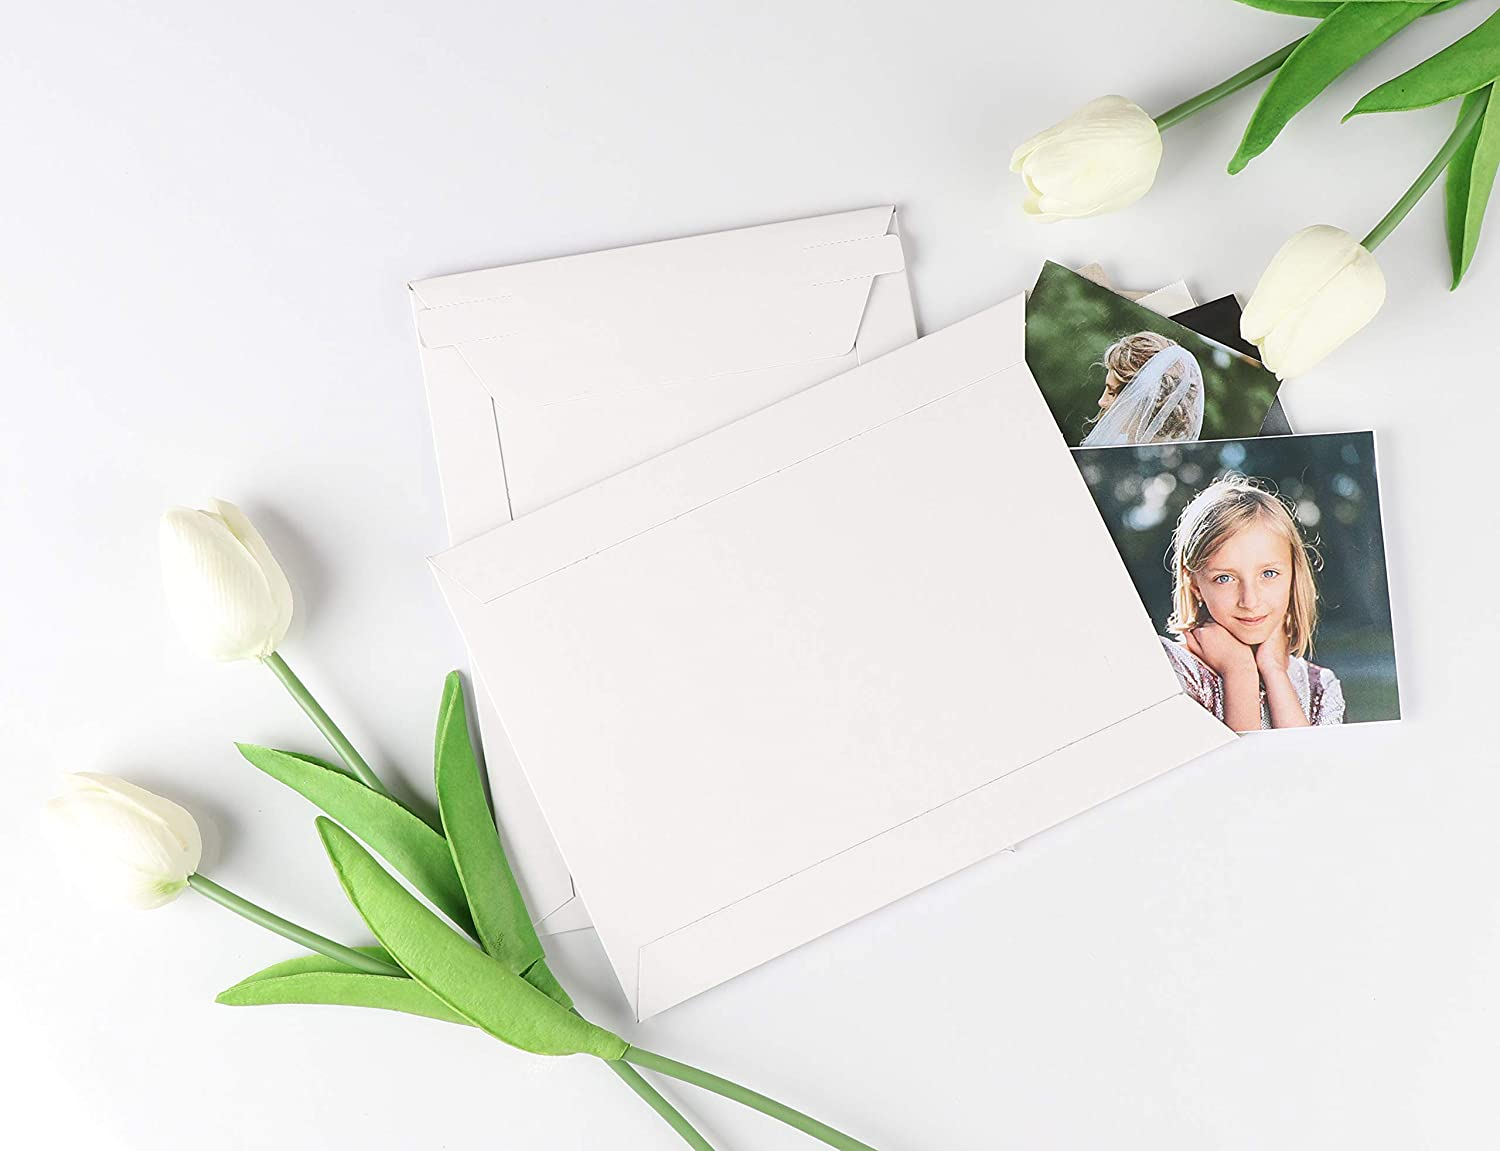 CDS No Bend Self-Seal Paperboard Envelope Mailers for Photos 6 x 8 inches 100-Pack Stay Flat Photo Document Mailers Rigid Mailers Pictures White